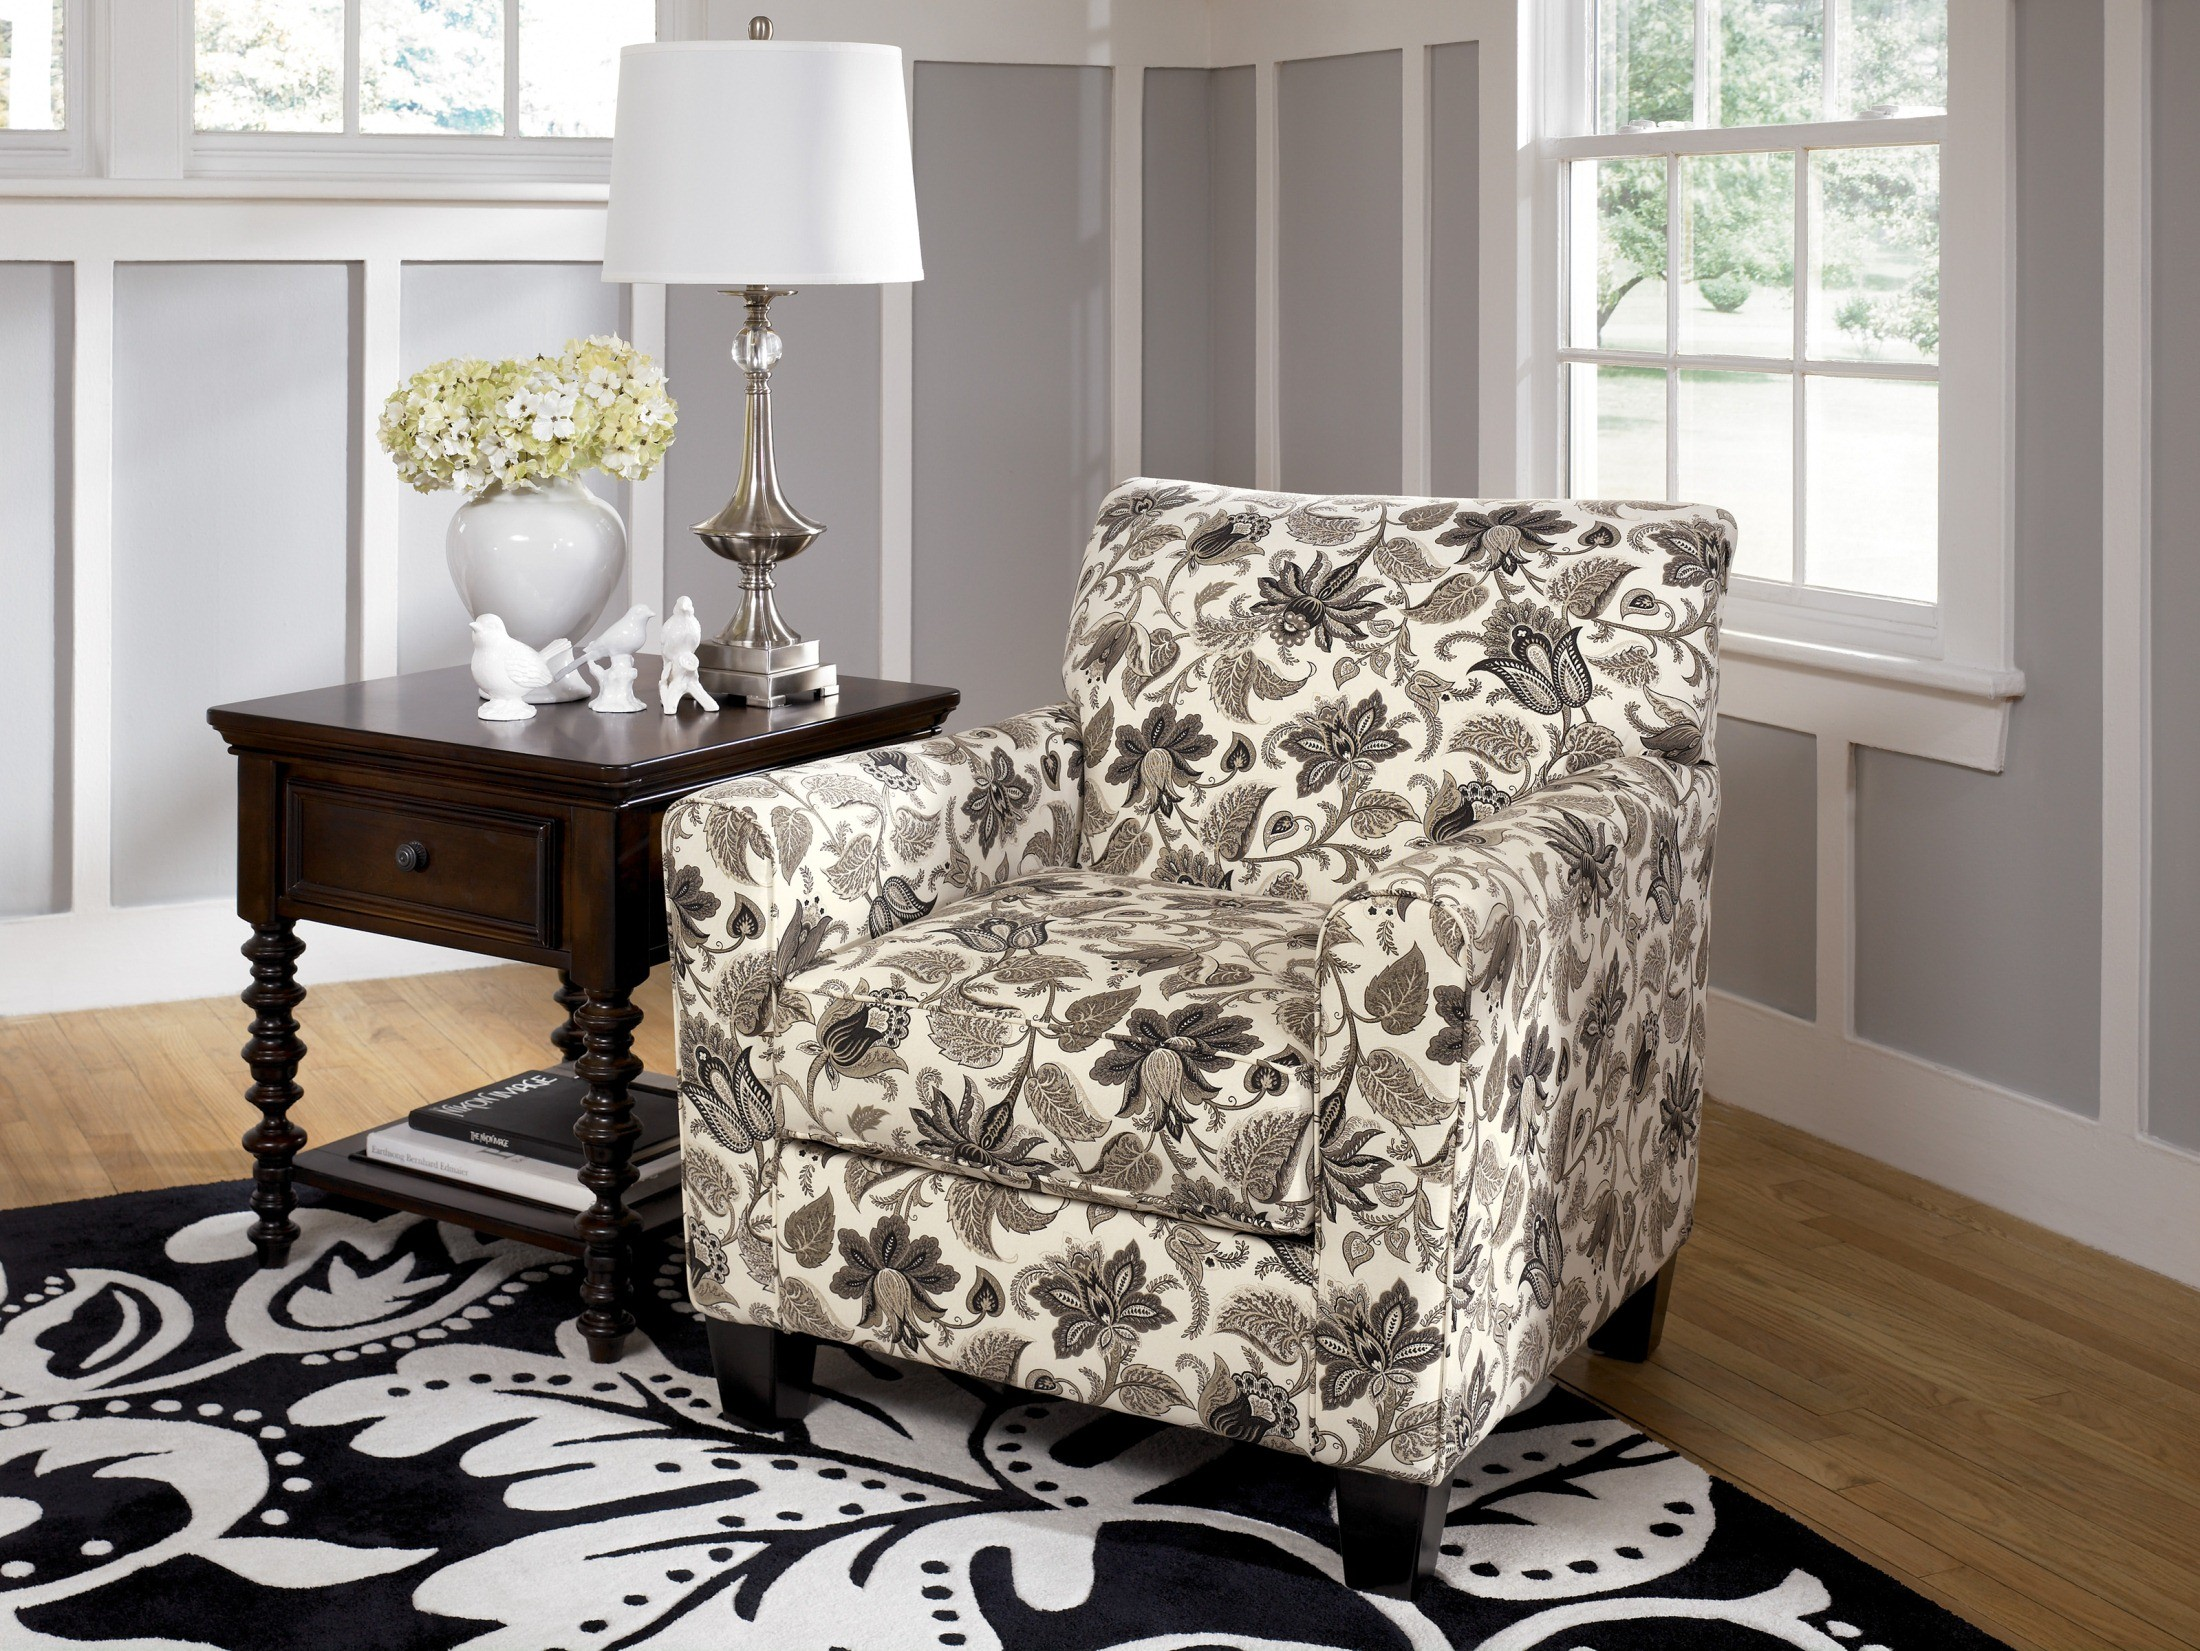 caroline sepia accent chair 1770021 living room chairs